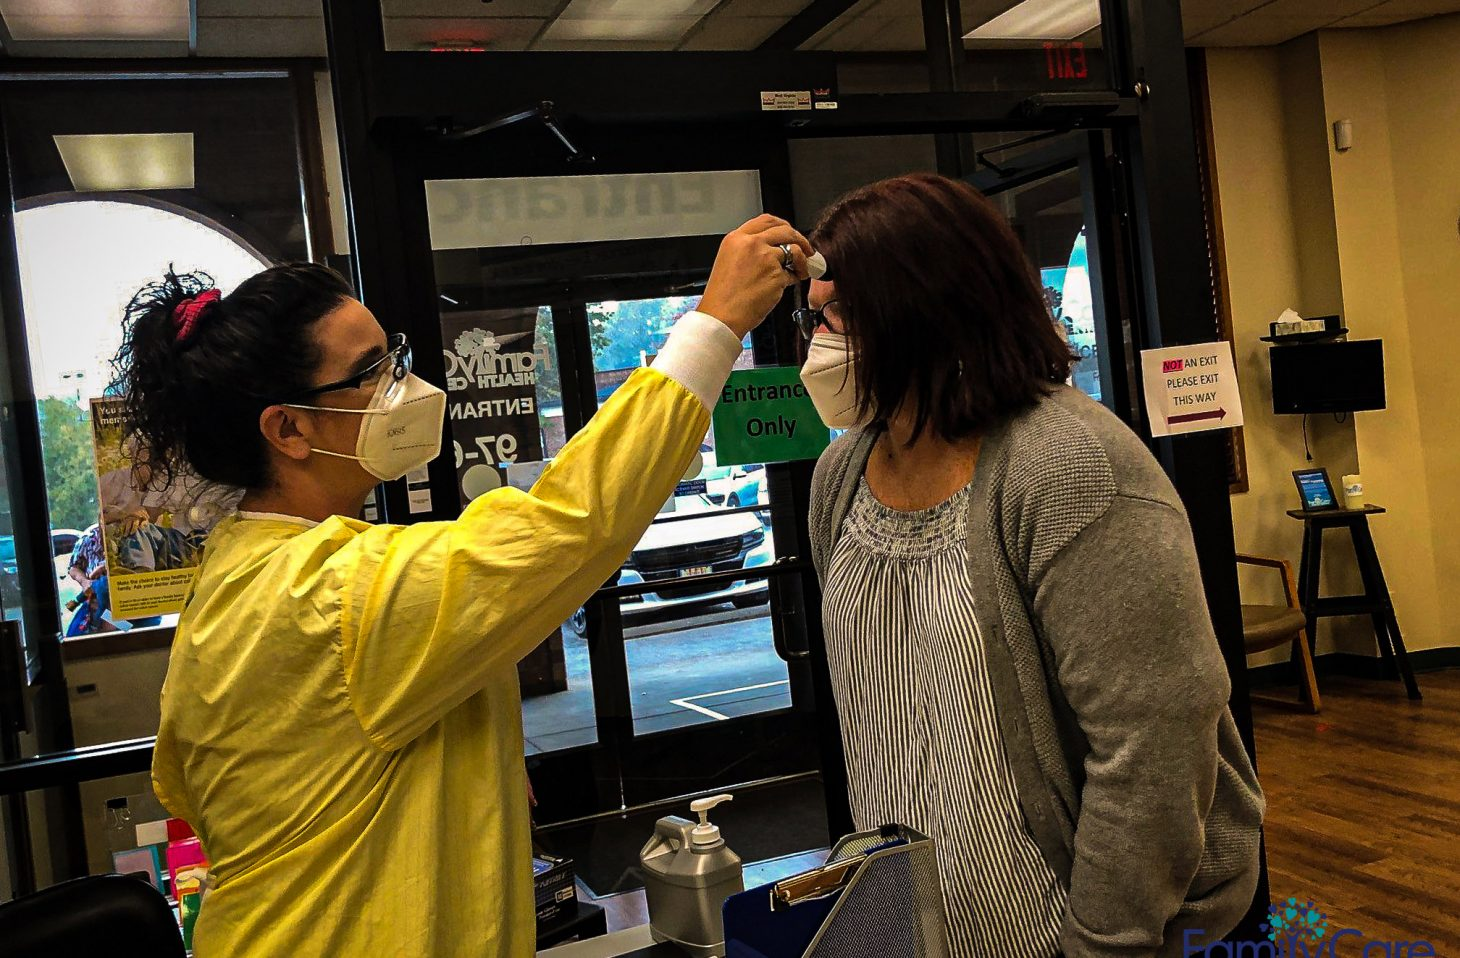 A nurse, wearing a face mask, takes the temperature of a patient, also wearing a face mask.